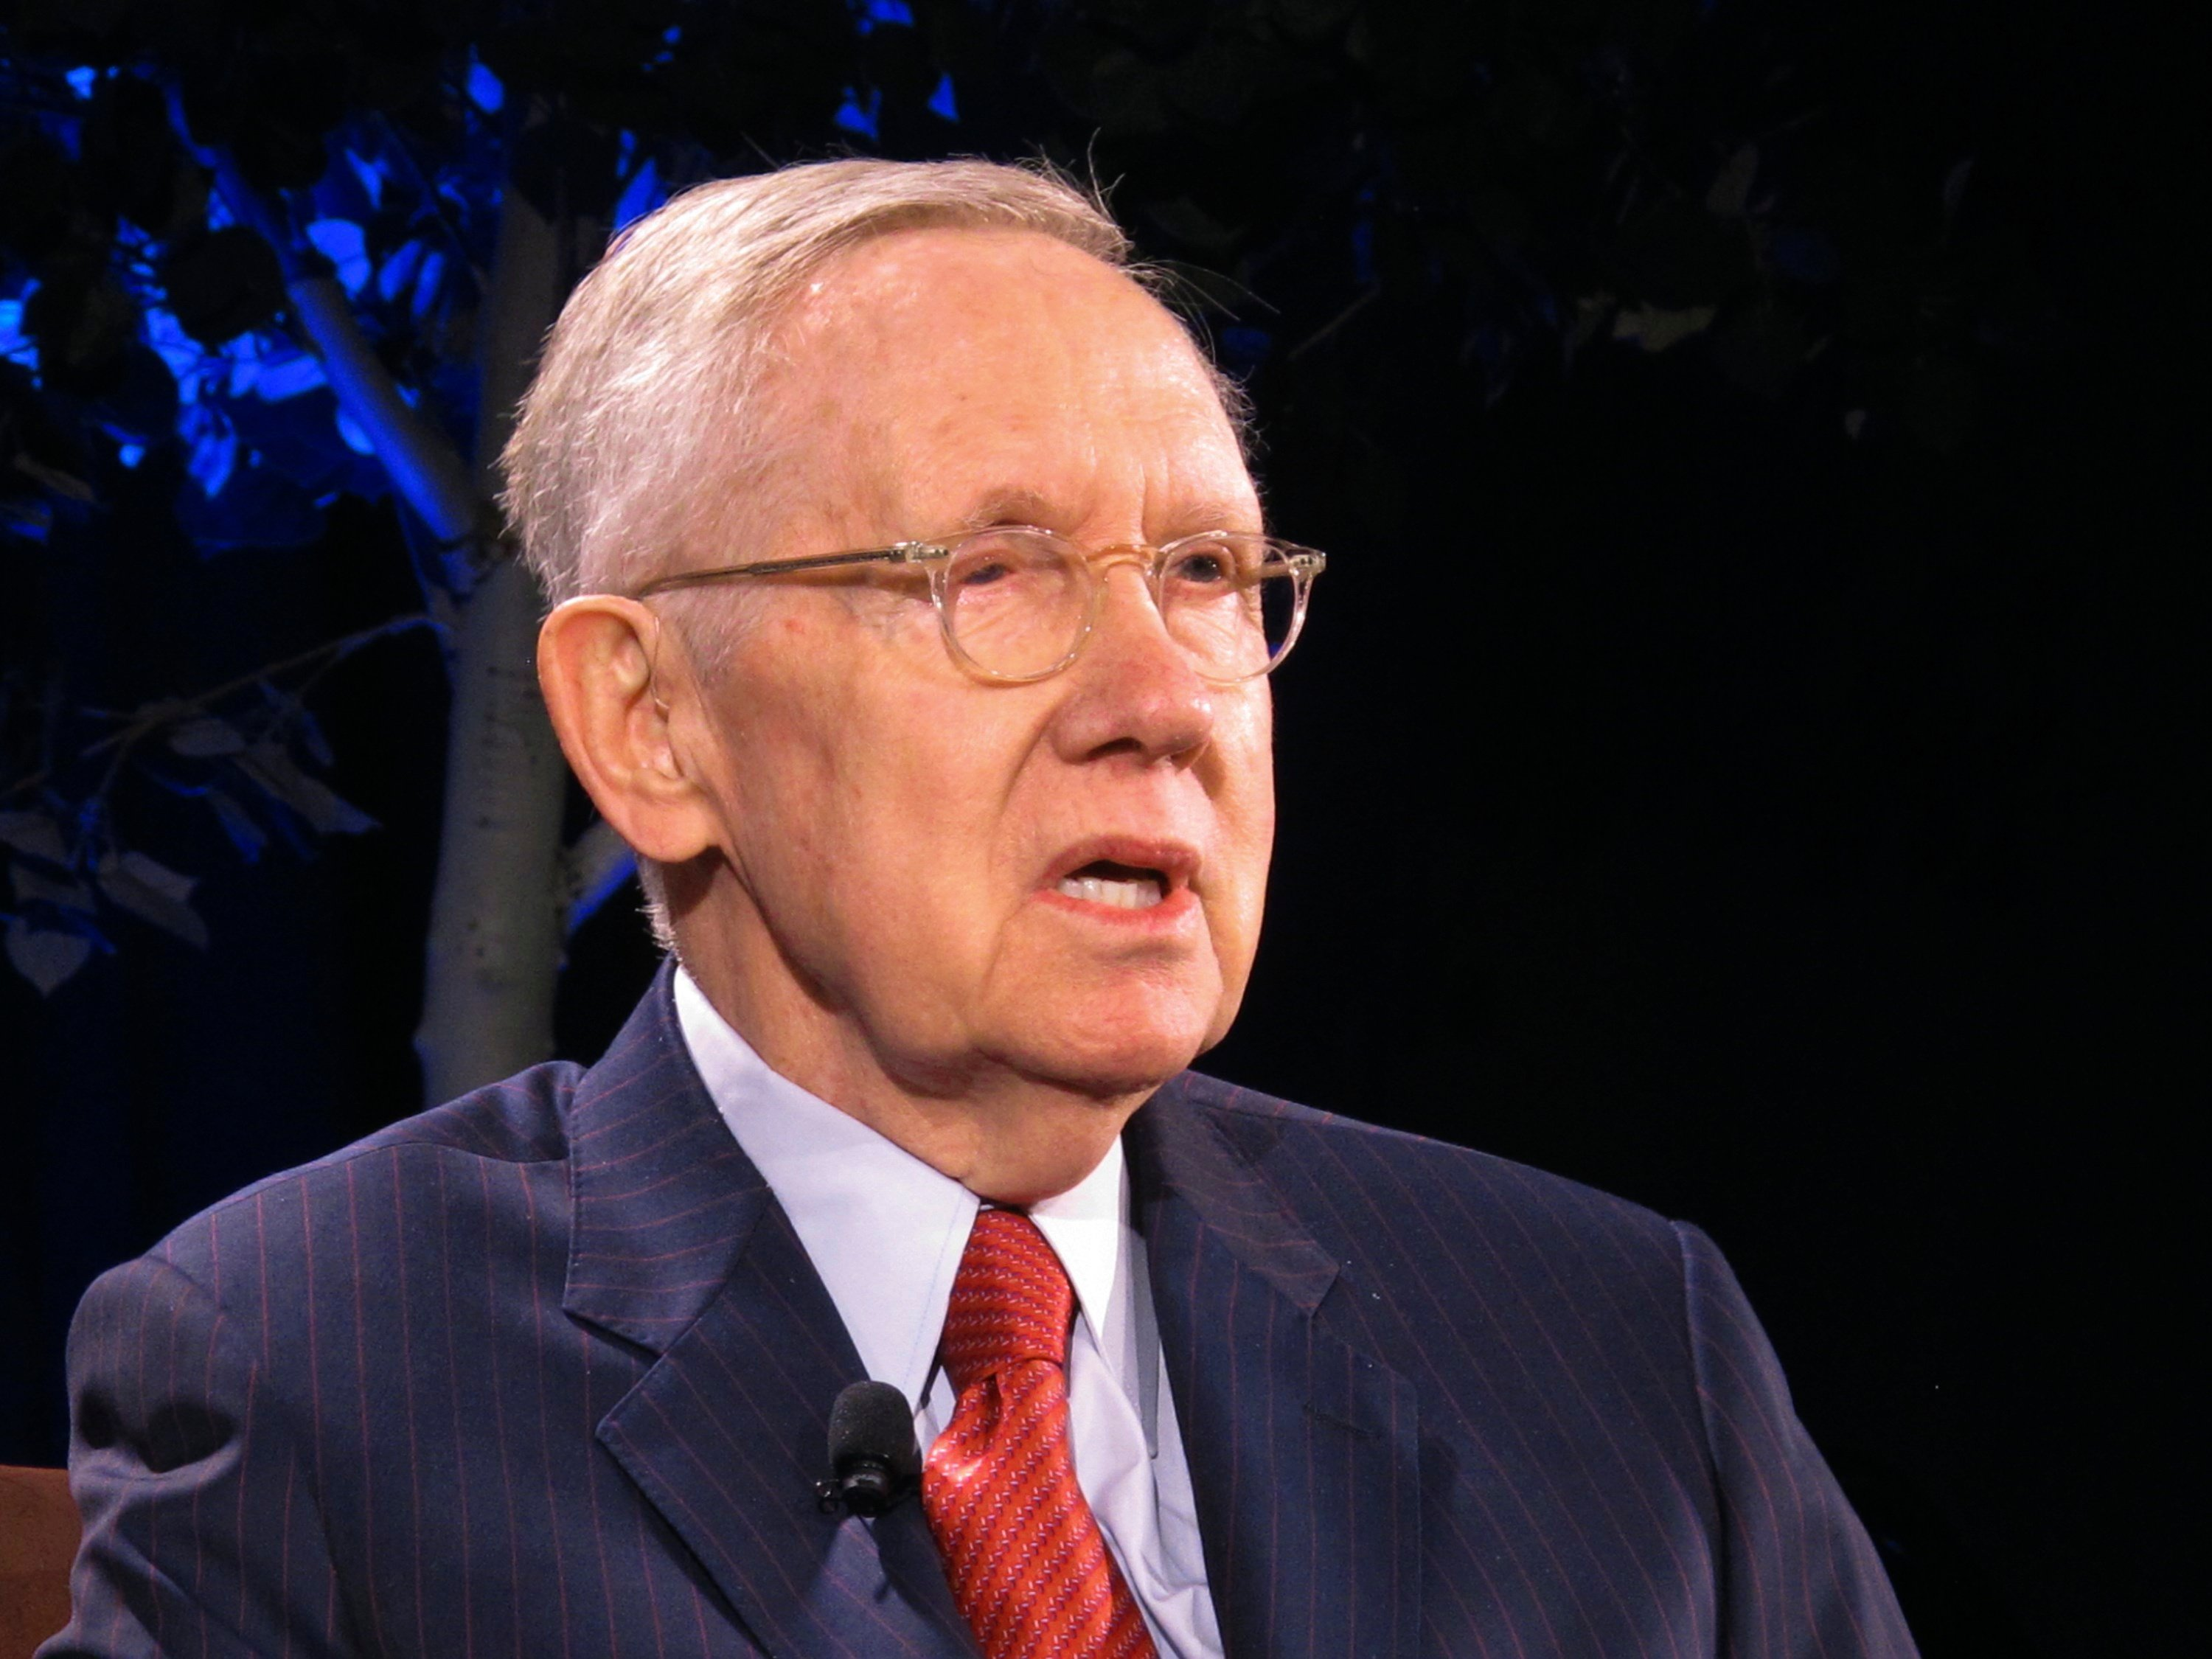 Harry Reid Has Surgery for Pancreatic Cancer